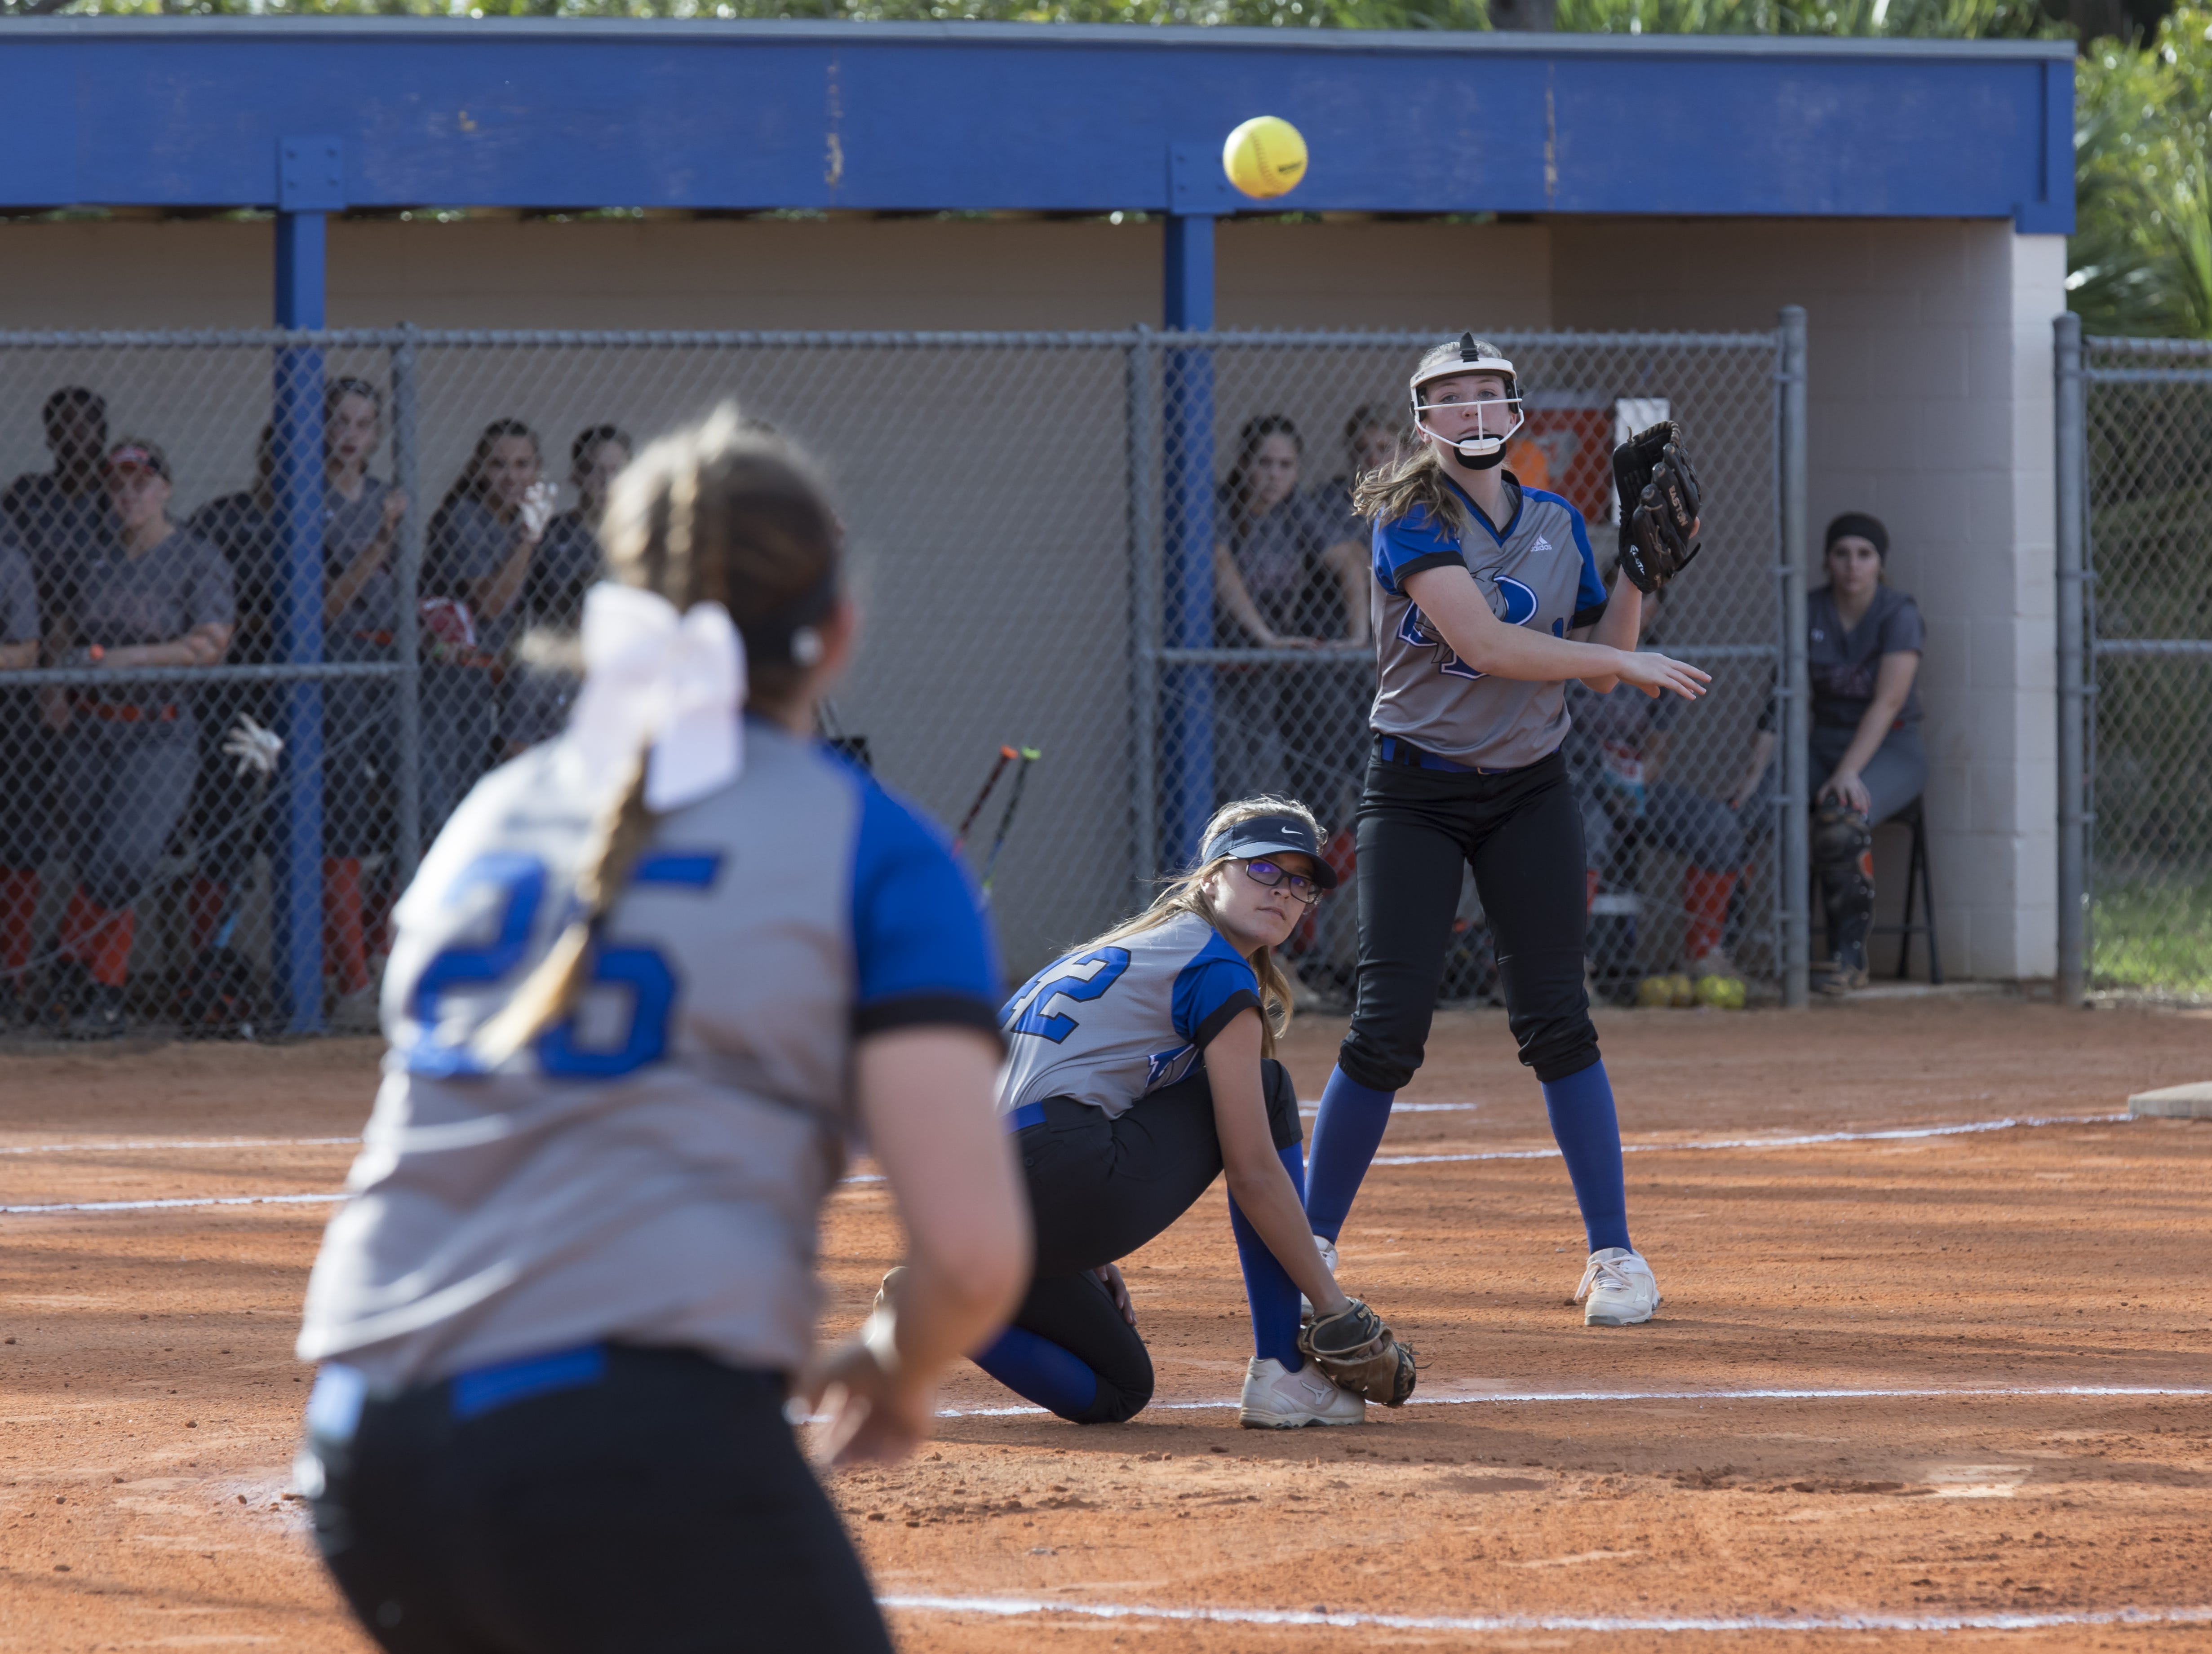 Lincoln Park Academy plays against Sebastian River, and wins 1-0, during the high school softball game Wednesday, April 17, 2019, in Sebastian.